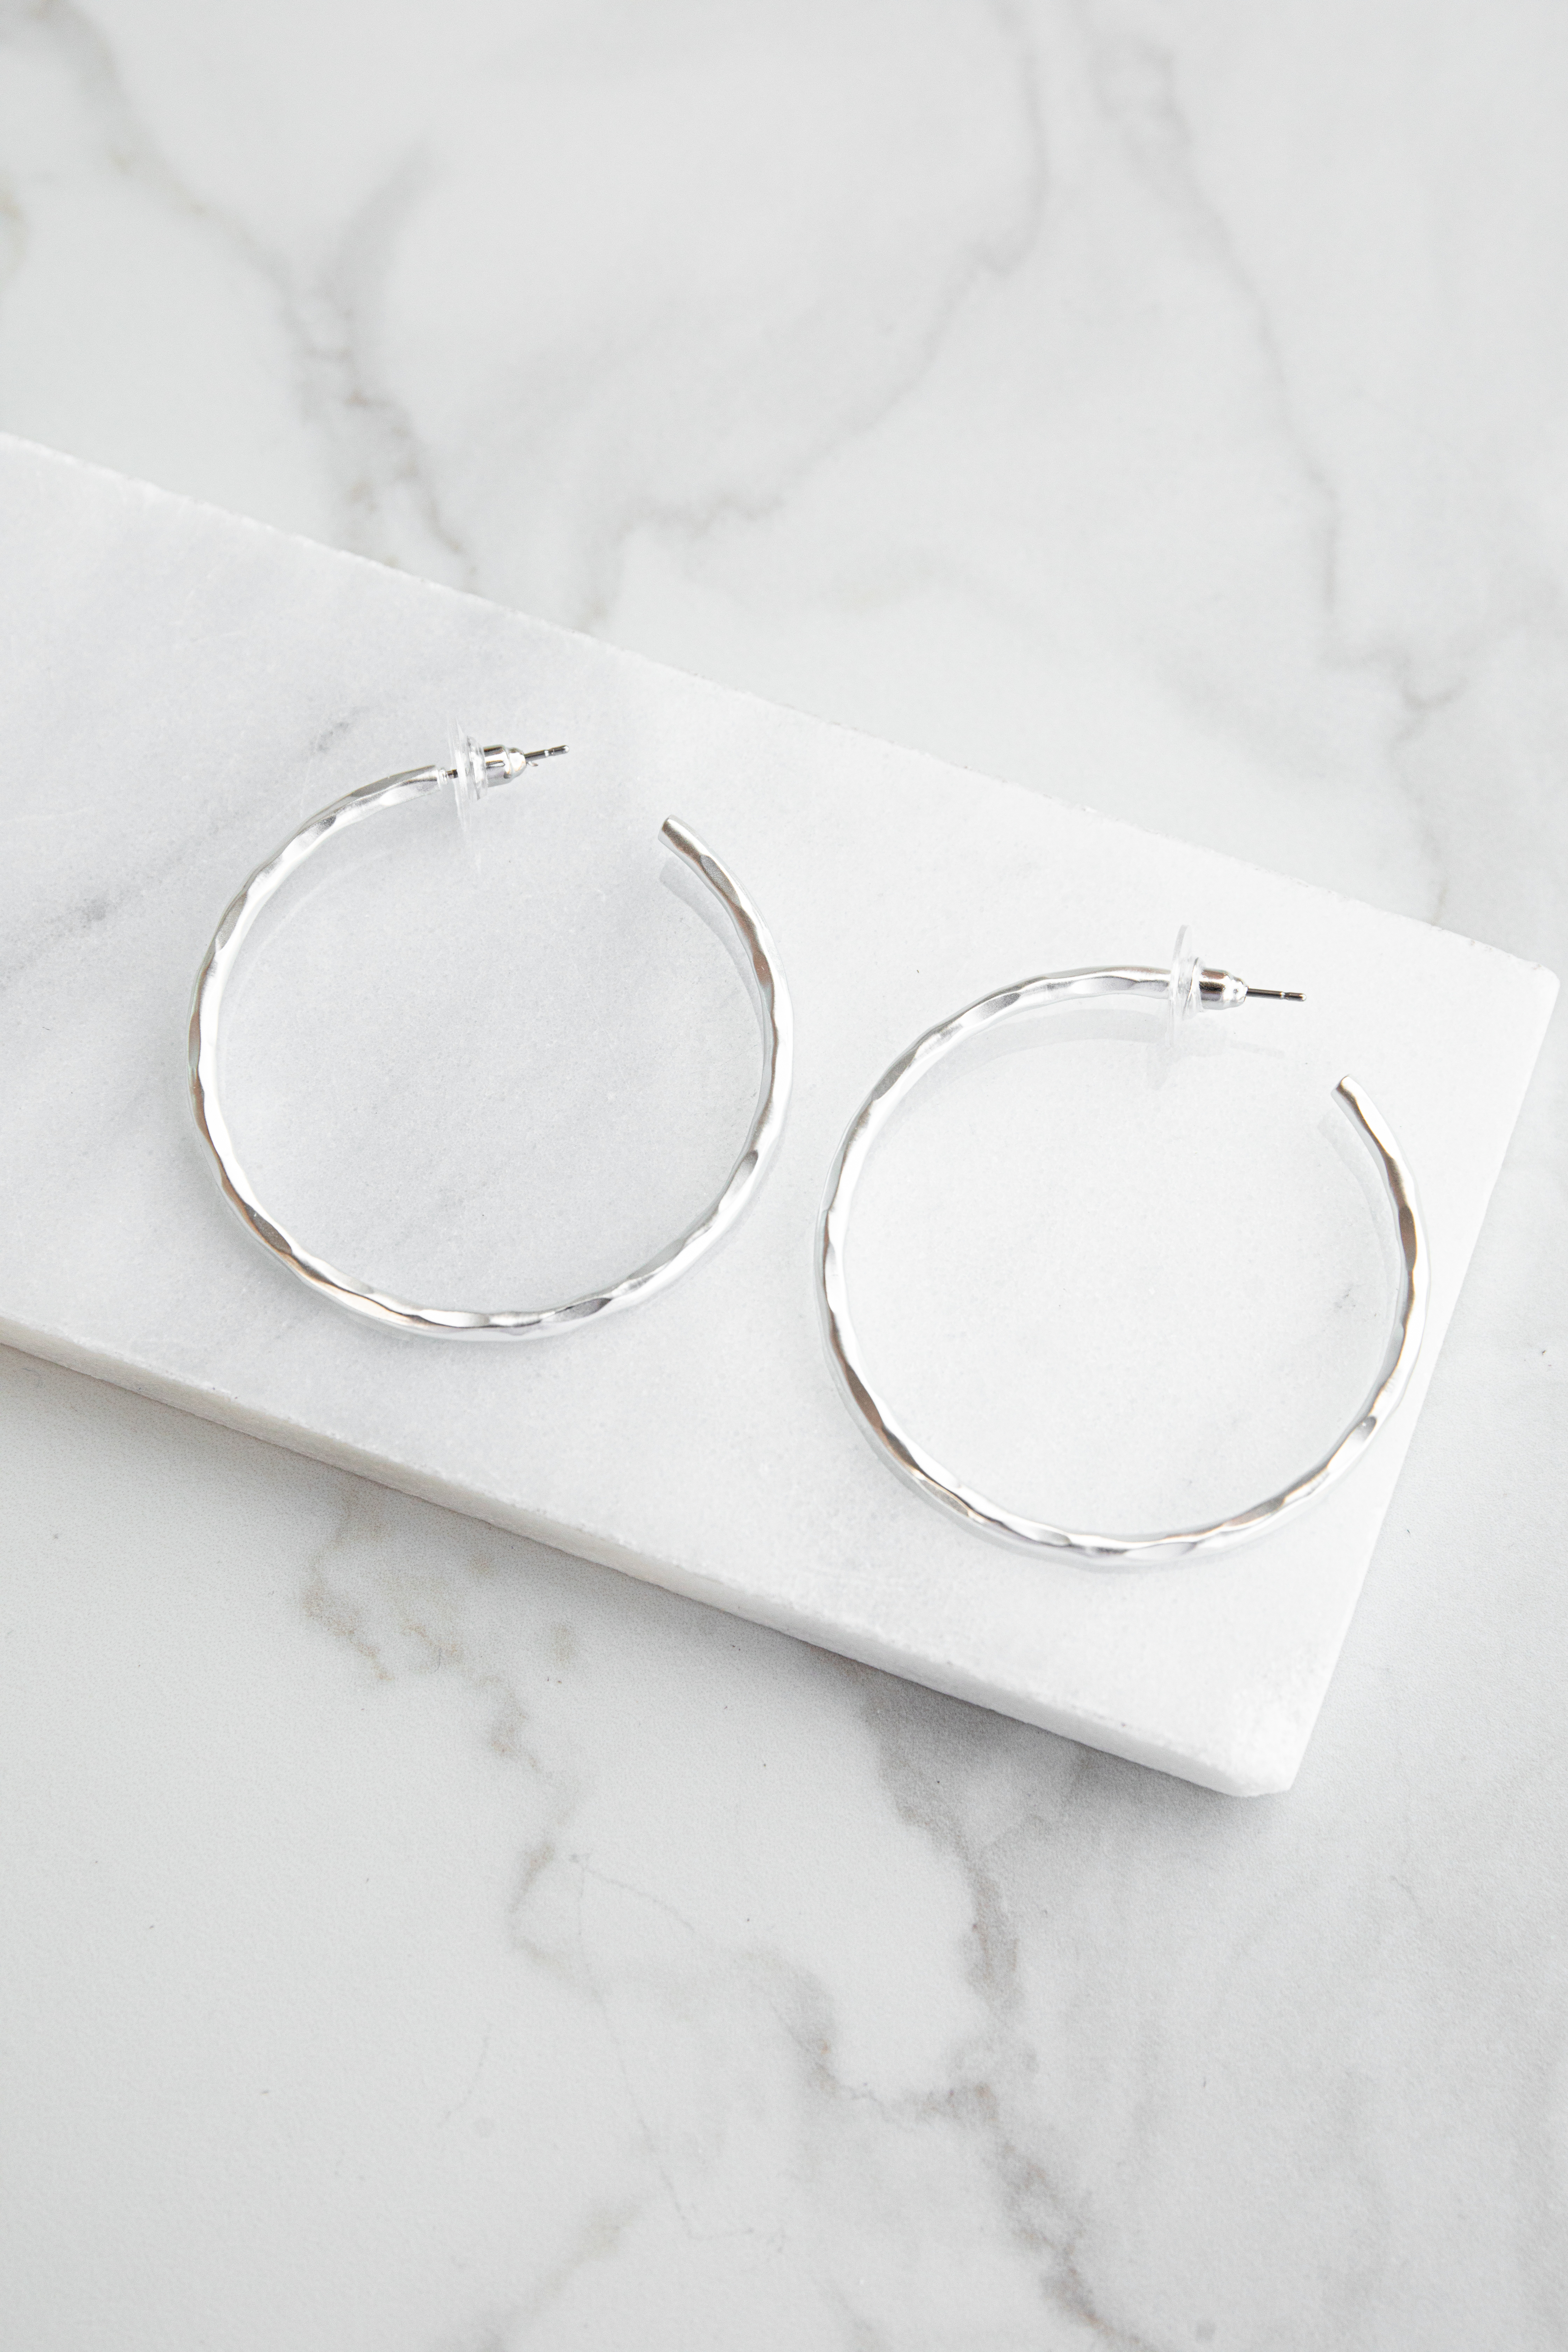 Silver Matte Hoop Earrings with Hammered Texture